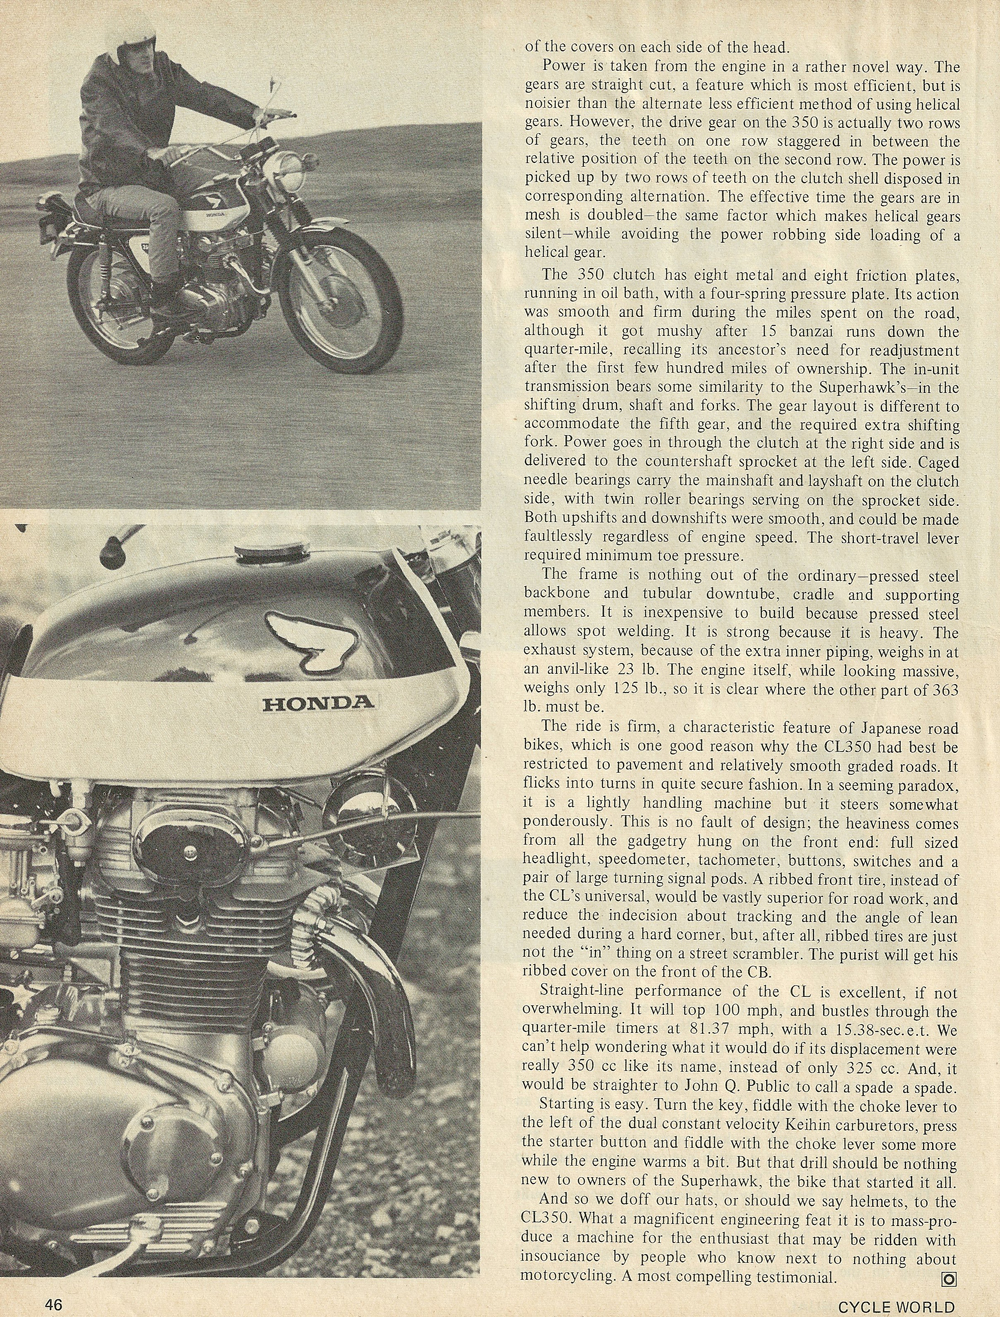 1969 Honda CL350 Scrambler road test 4.jpg